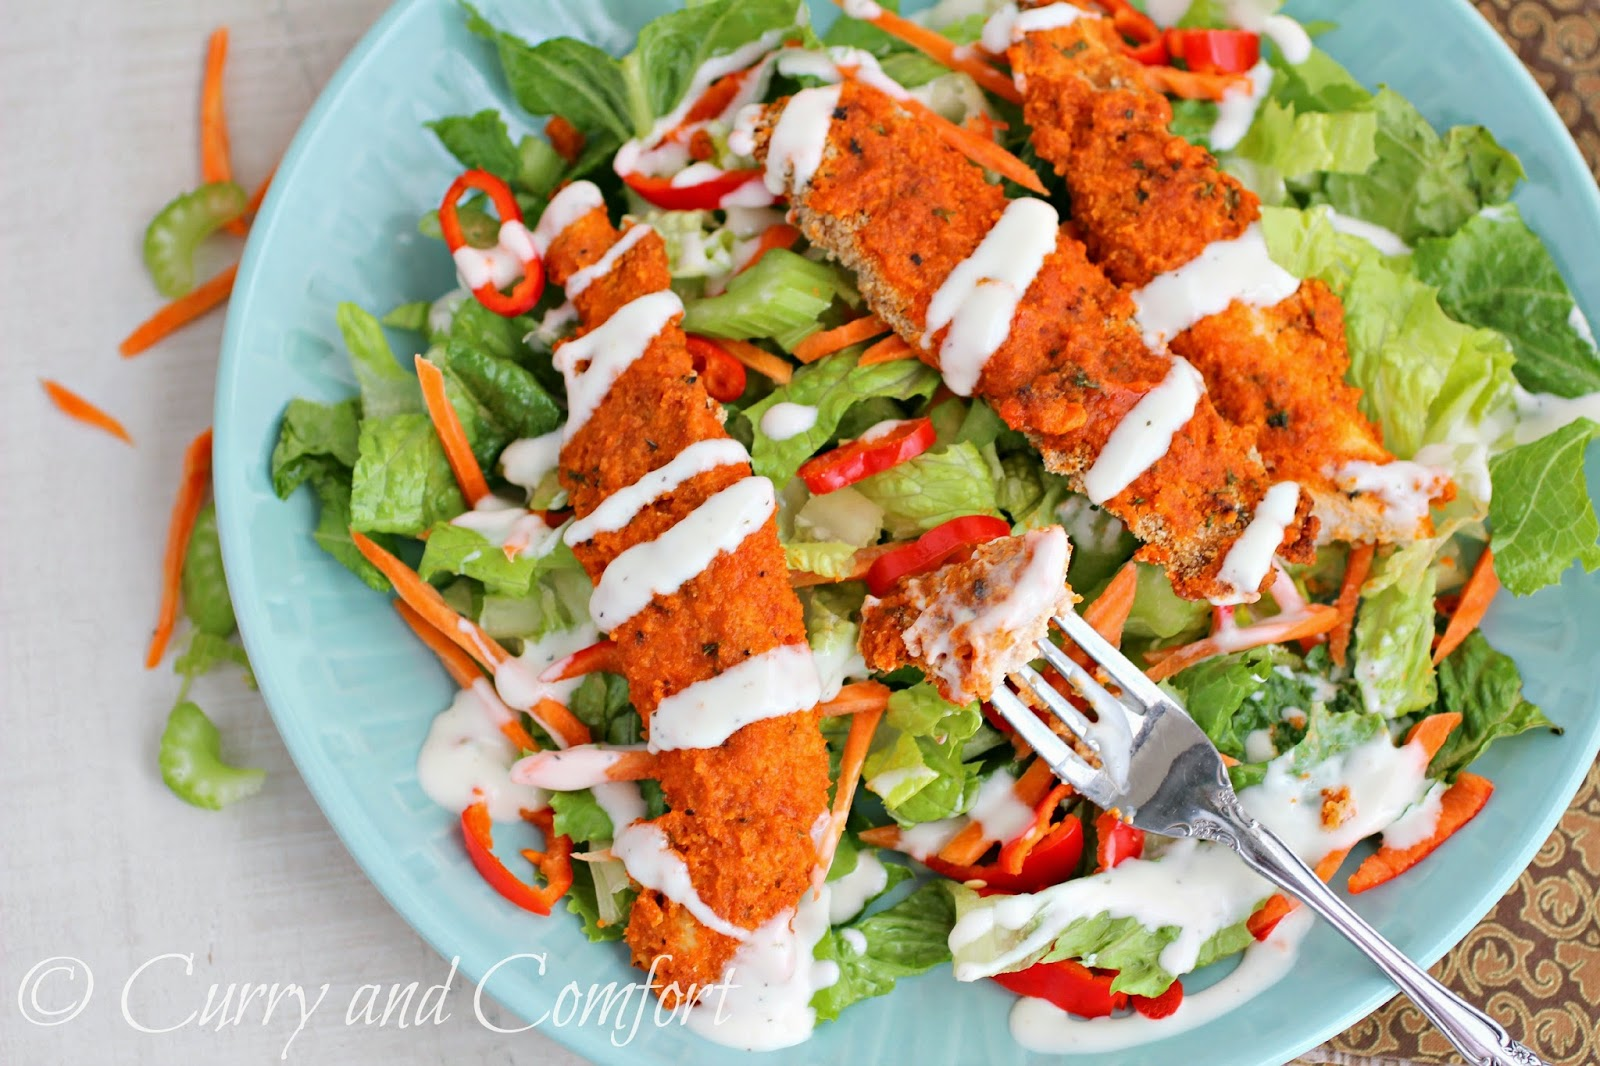 Curry and Comfort: Buffalo Chicken Salad